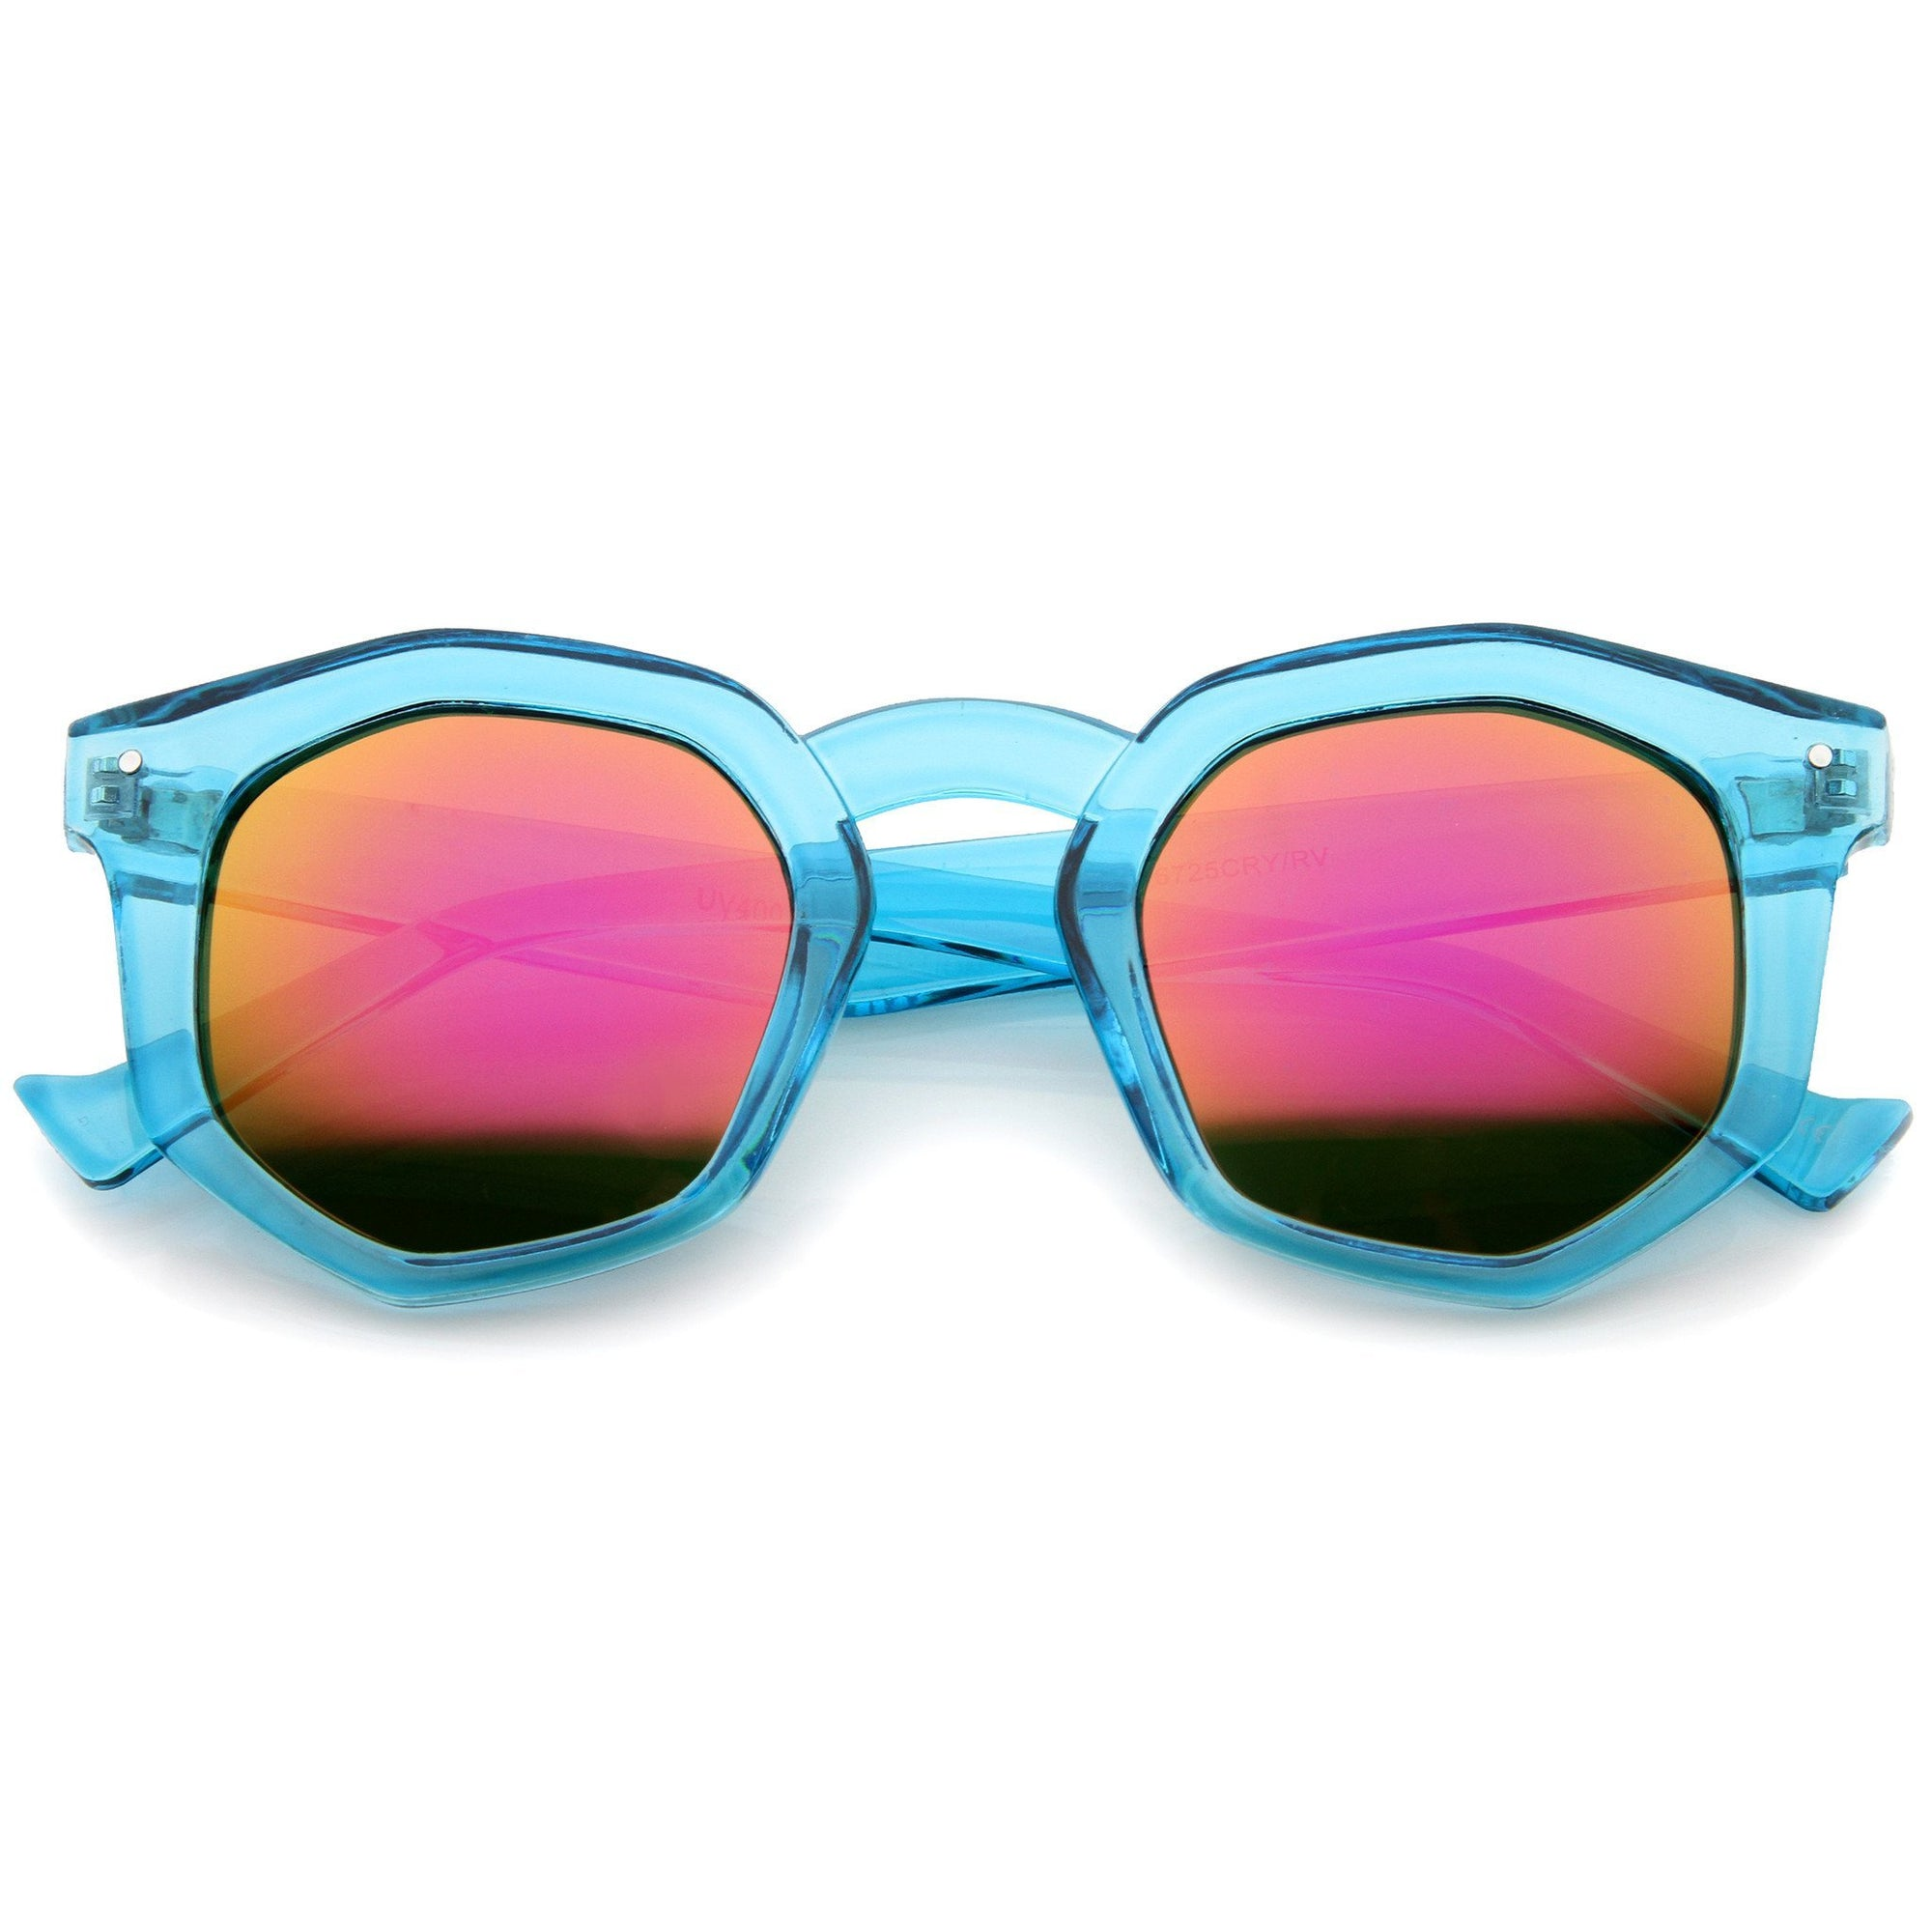 Retro Geometric Colorful Translucent Hexagon Sunglasses A248 - Upcube 9f491a29a